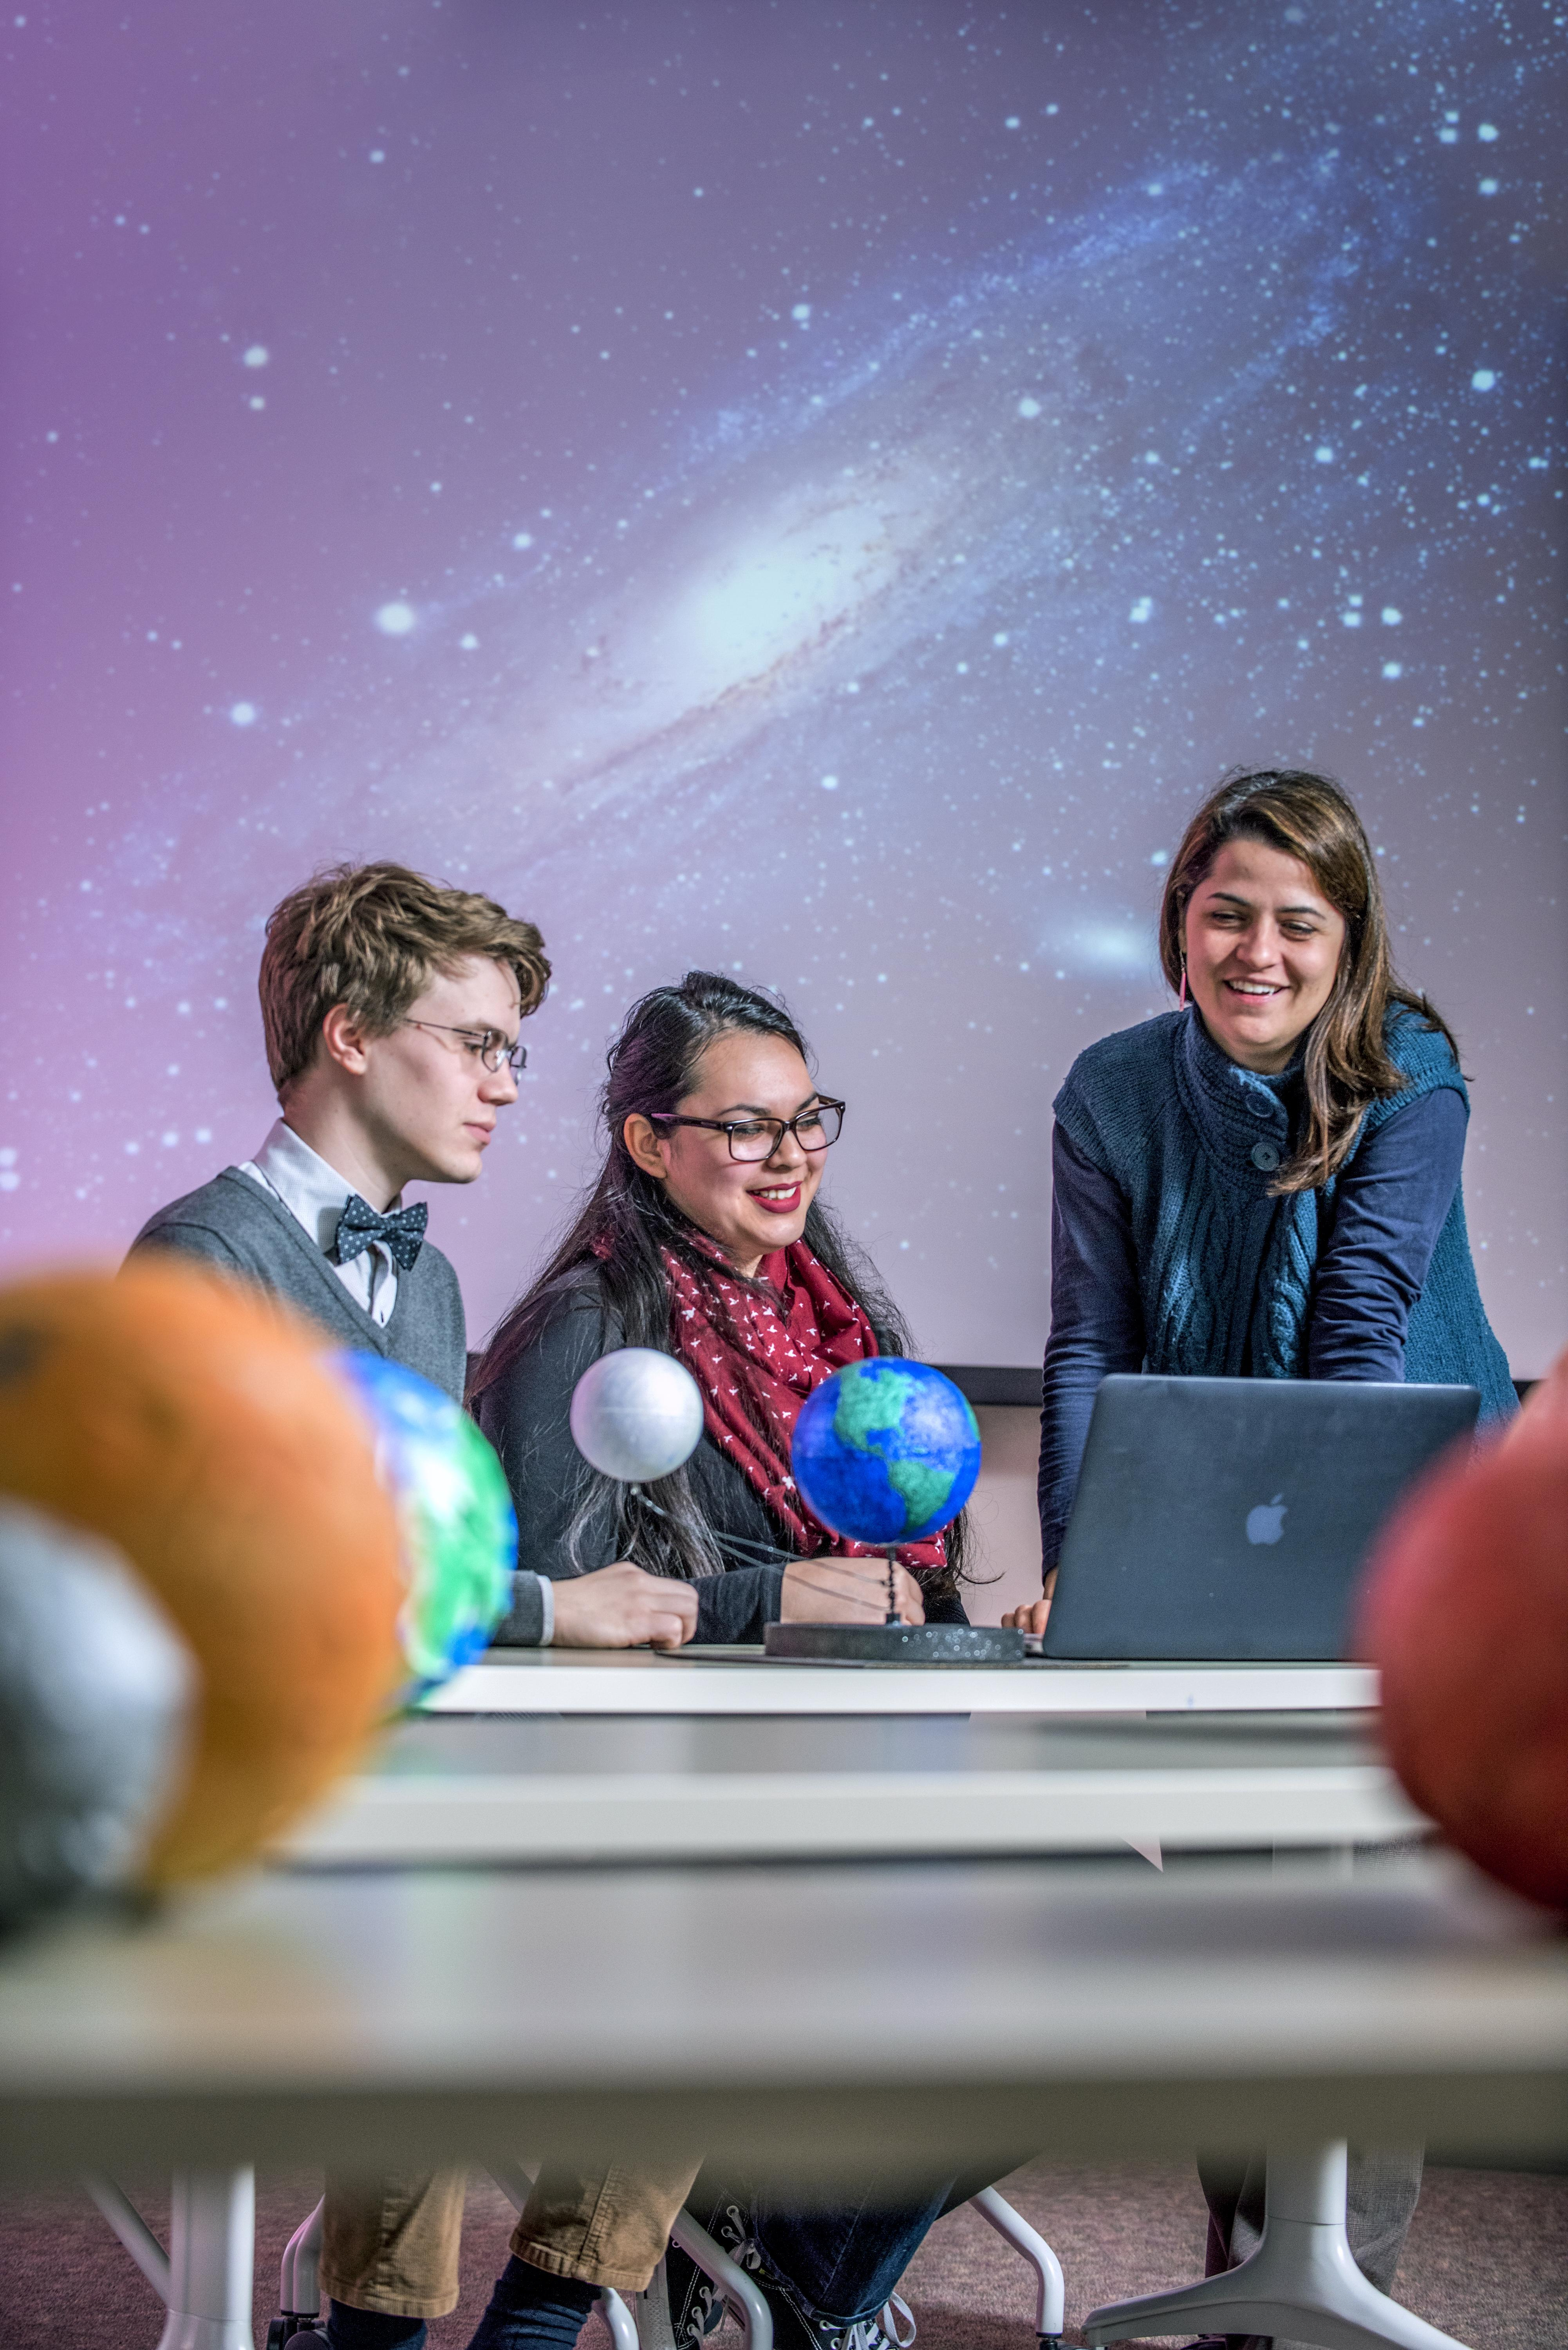 Paola Rodríguez Hidalgo working with physics and astronomy students